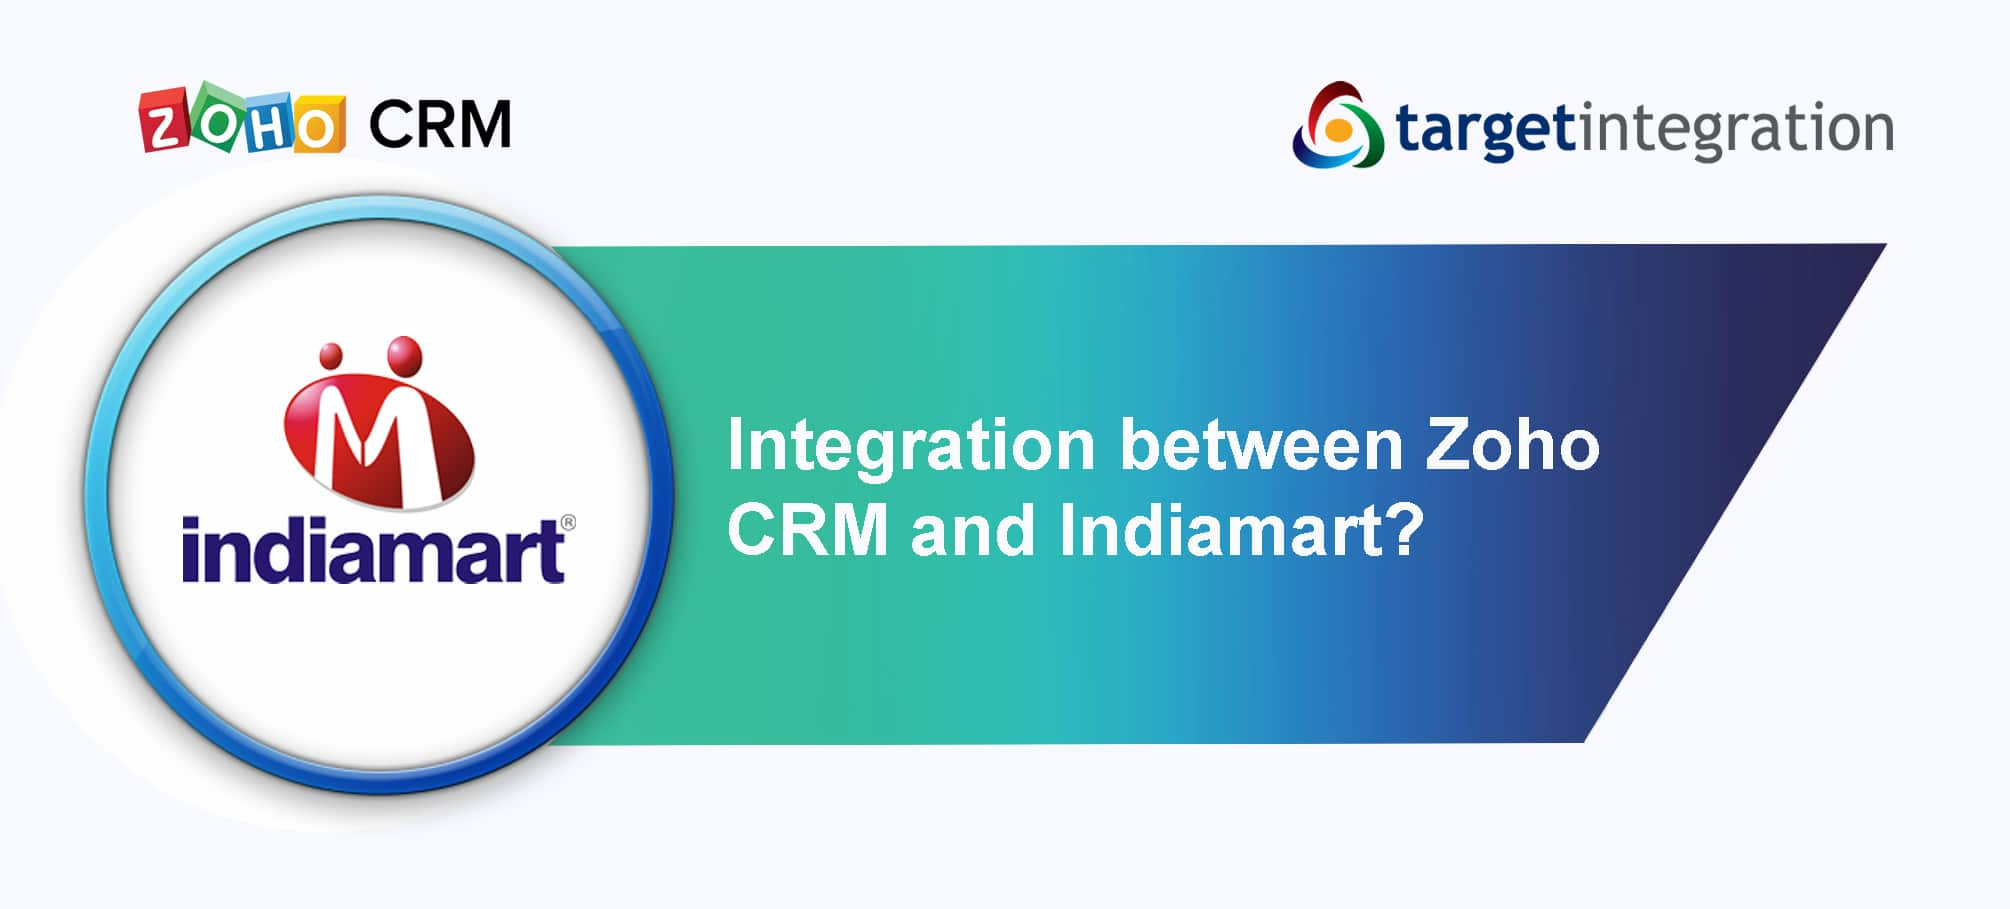 indiamart integration